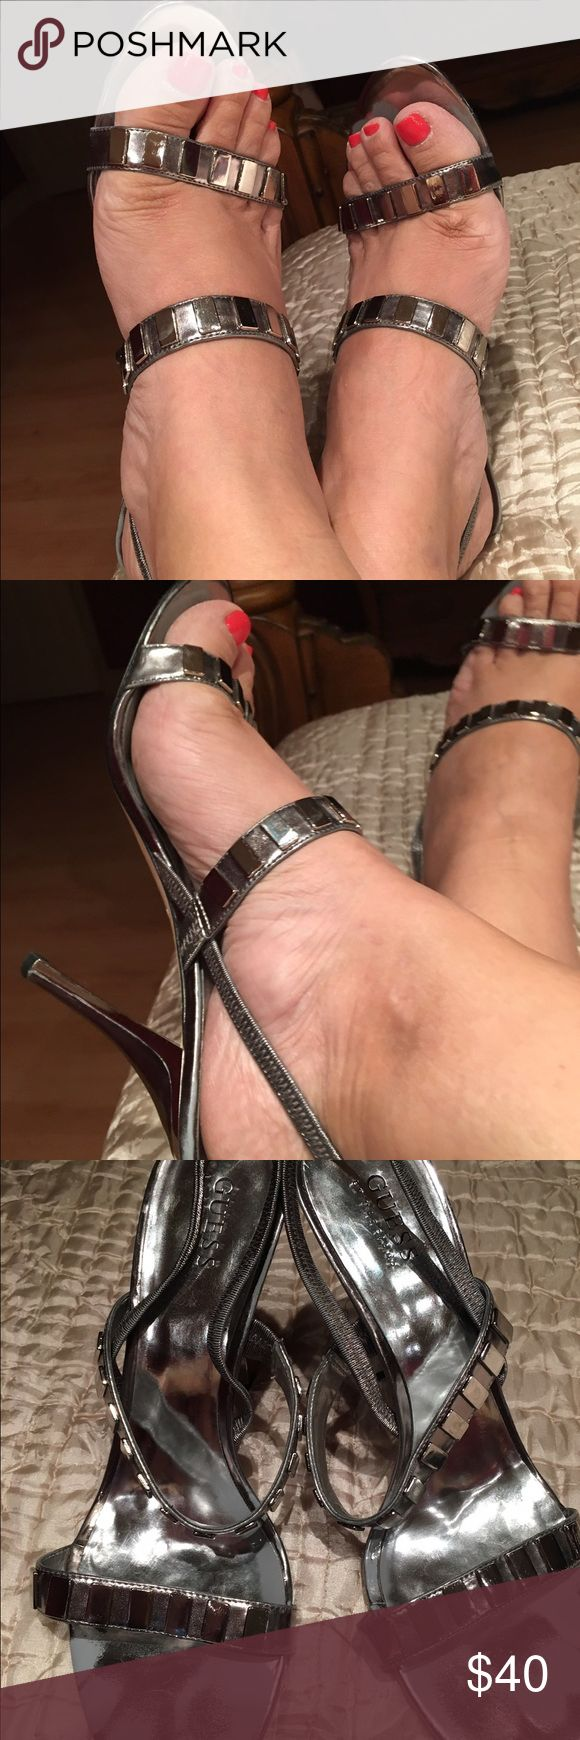 Silver high heel sandals High heel sandals Guess bi Marciano Guess by Marciano Shoes Heels